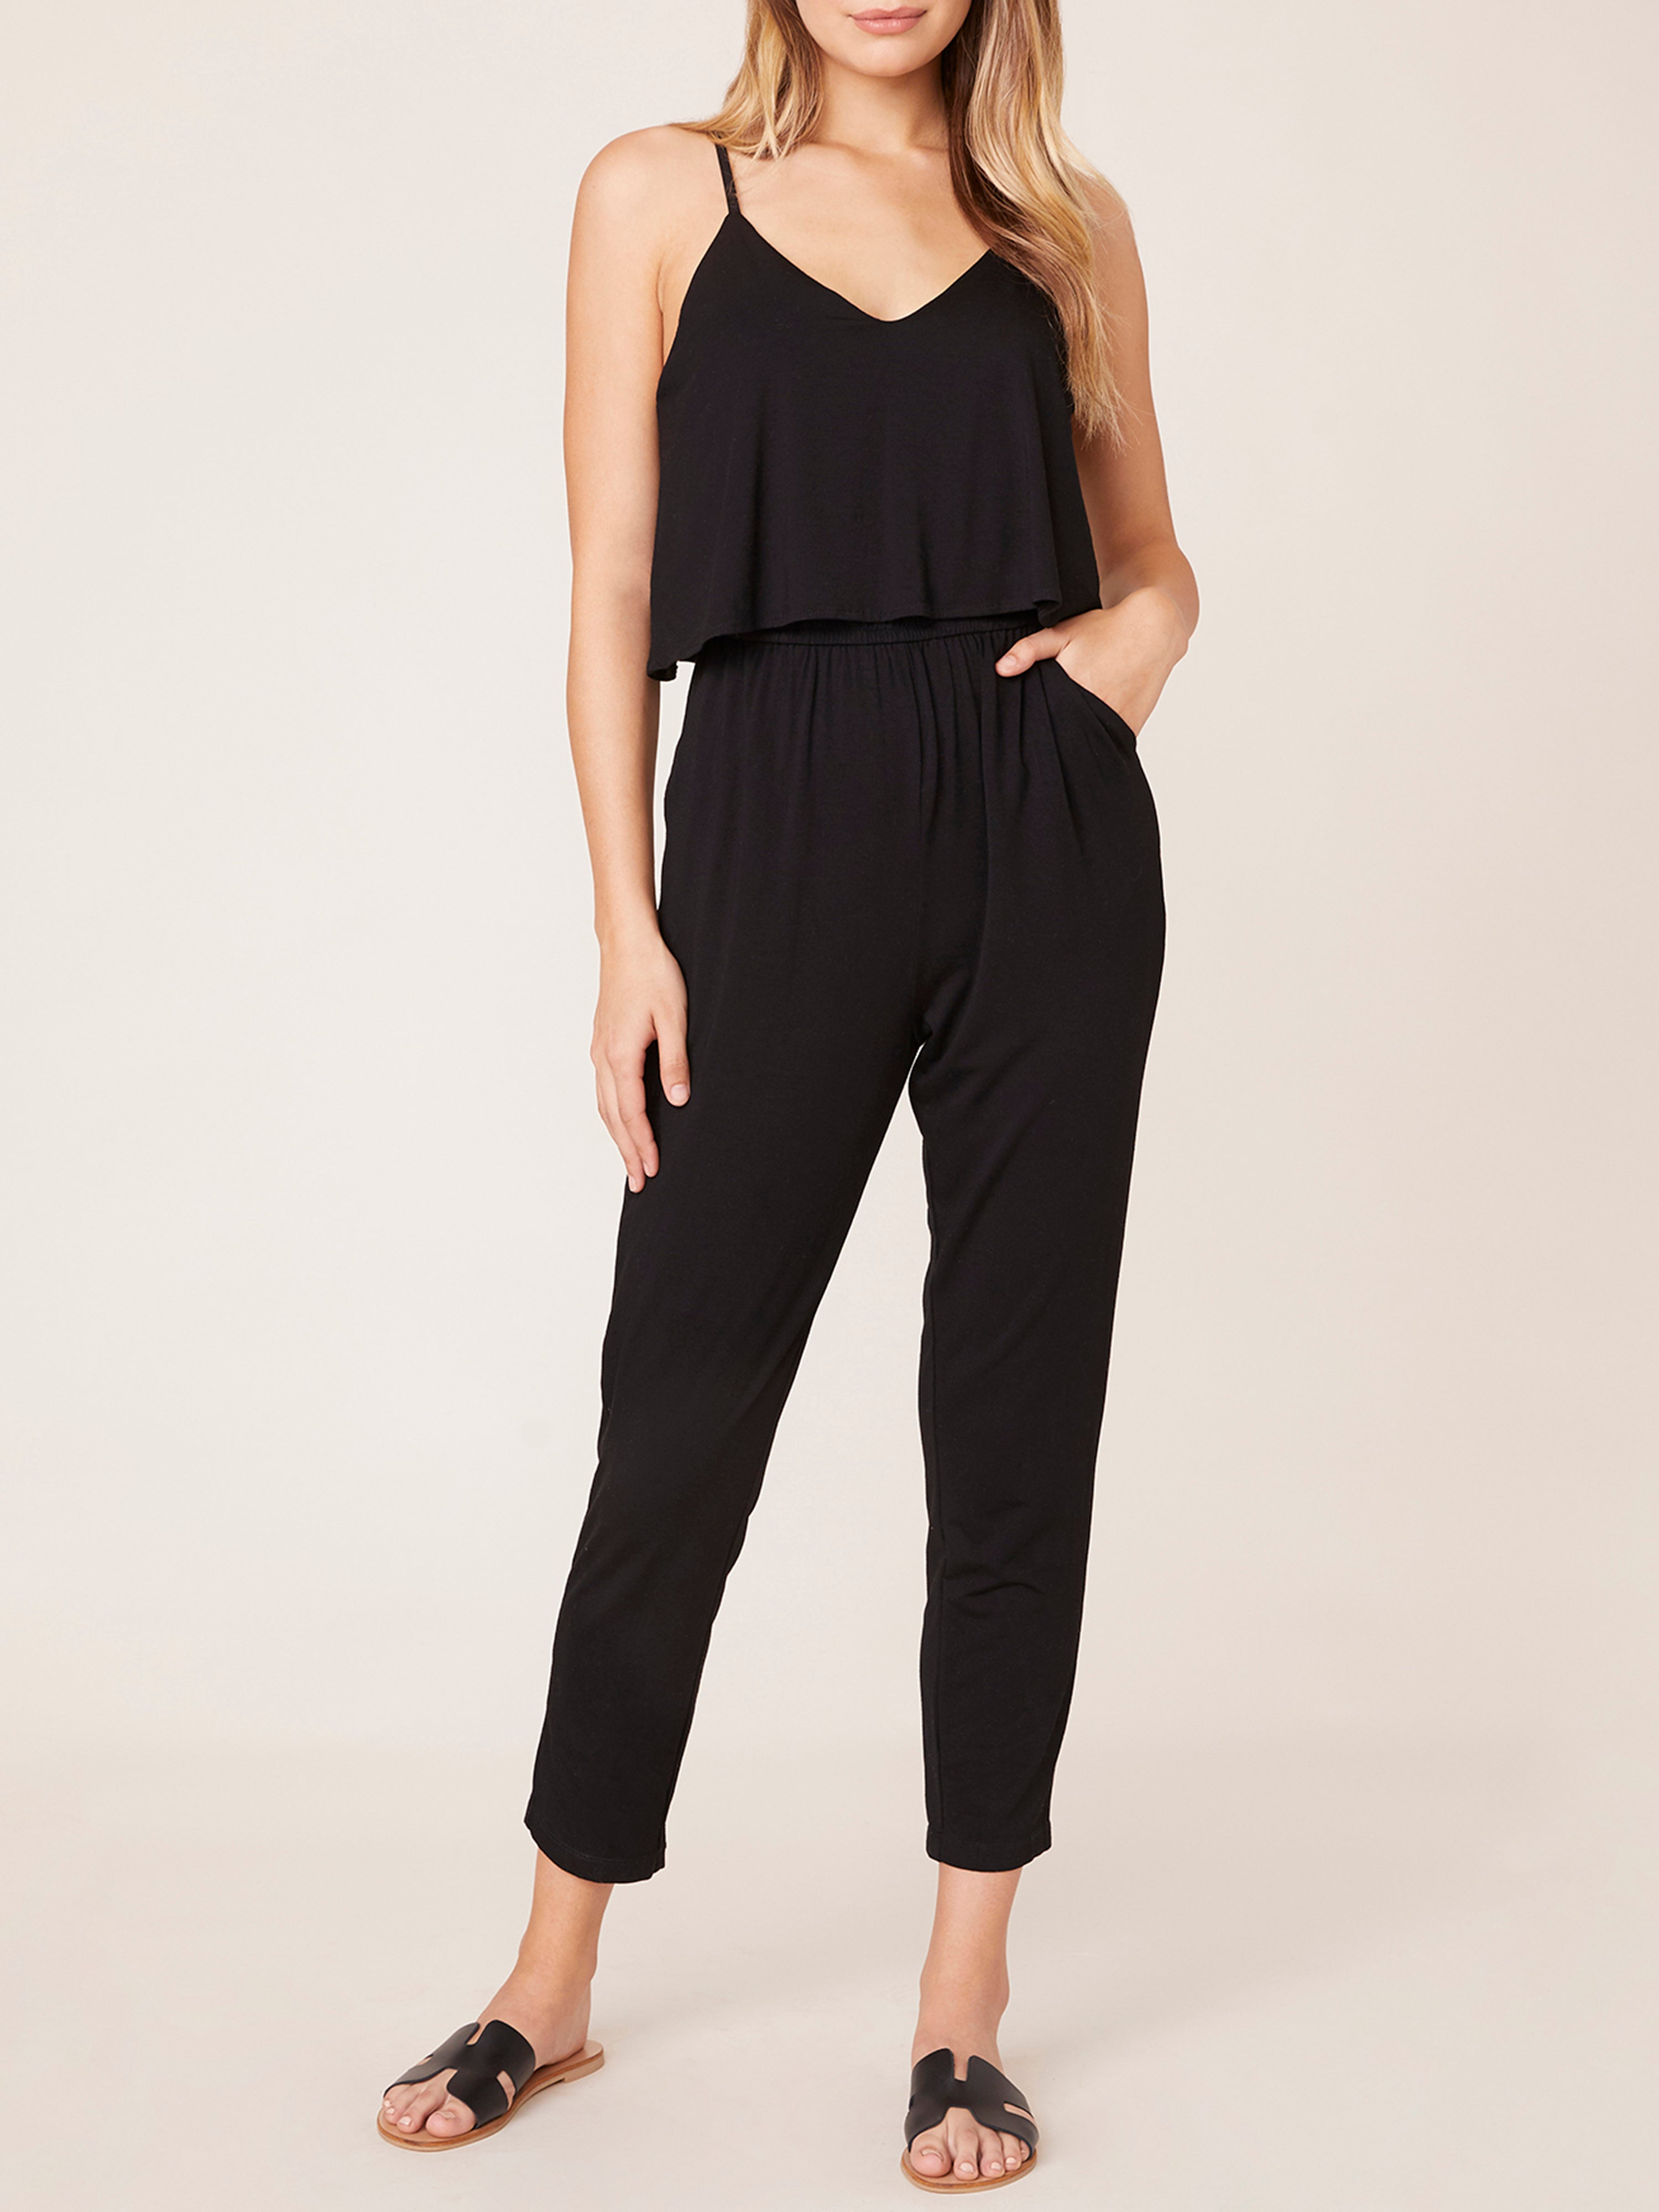 BB Dakota Black Romper